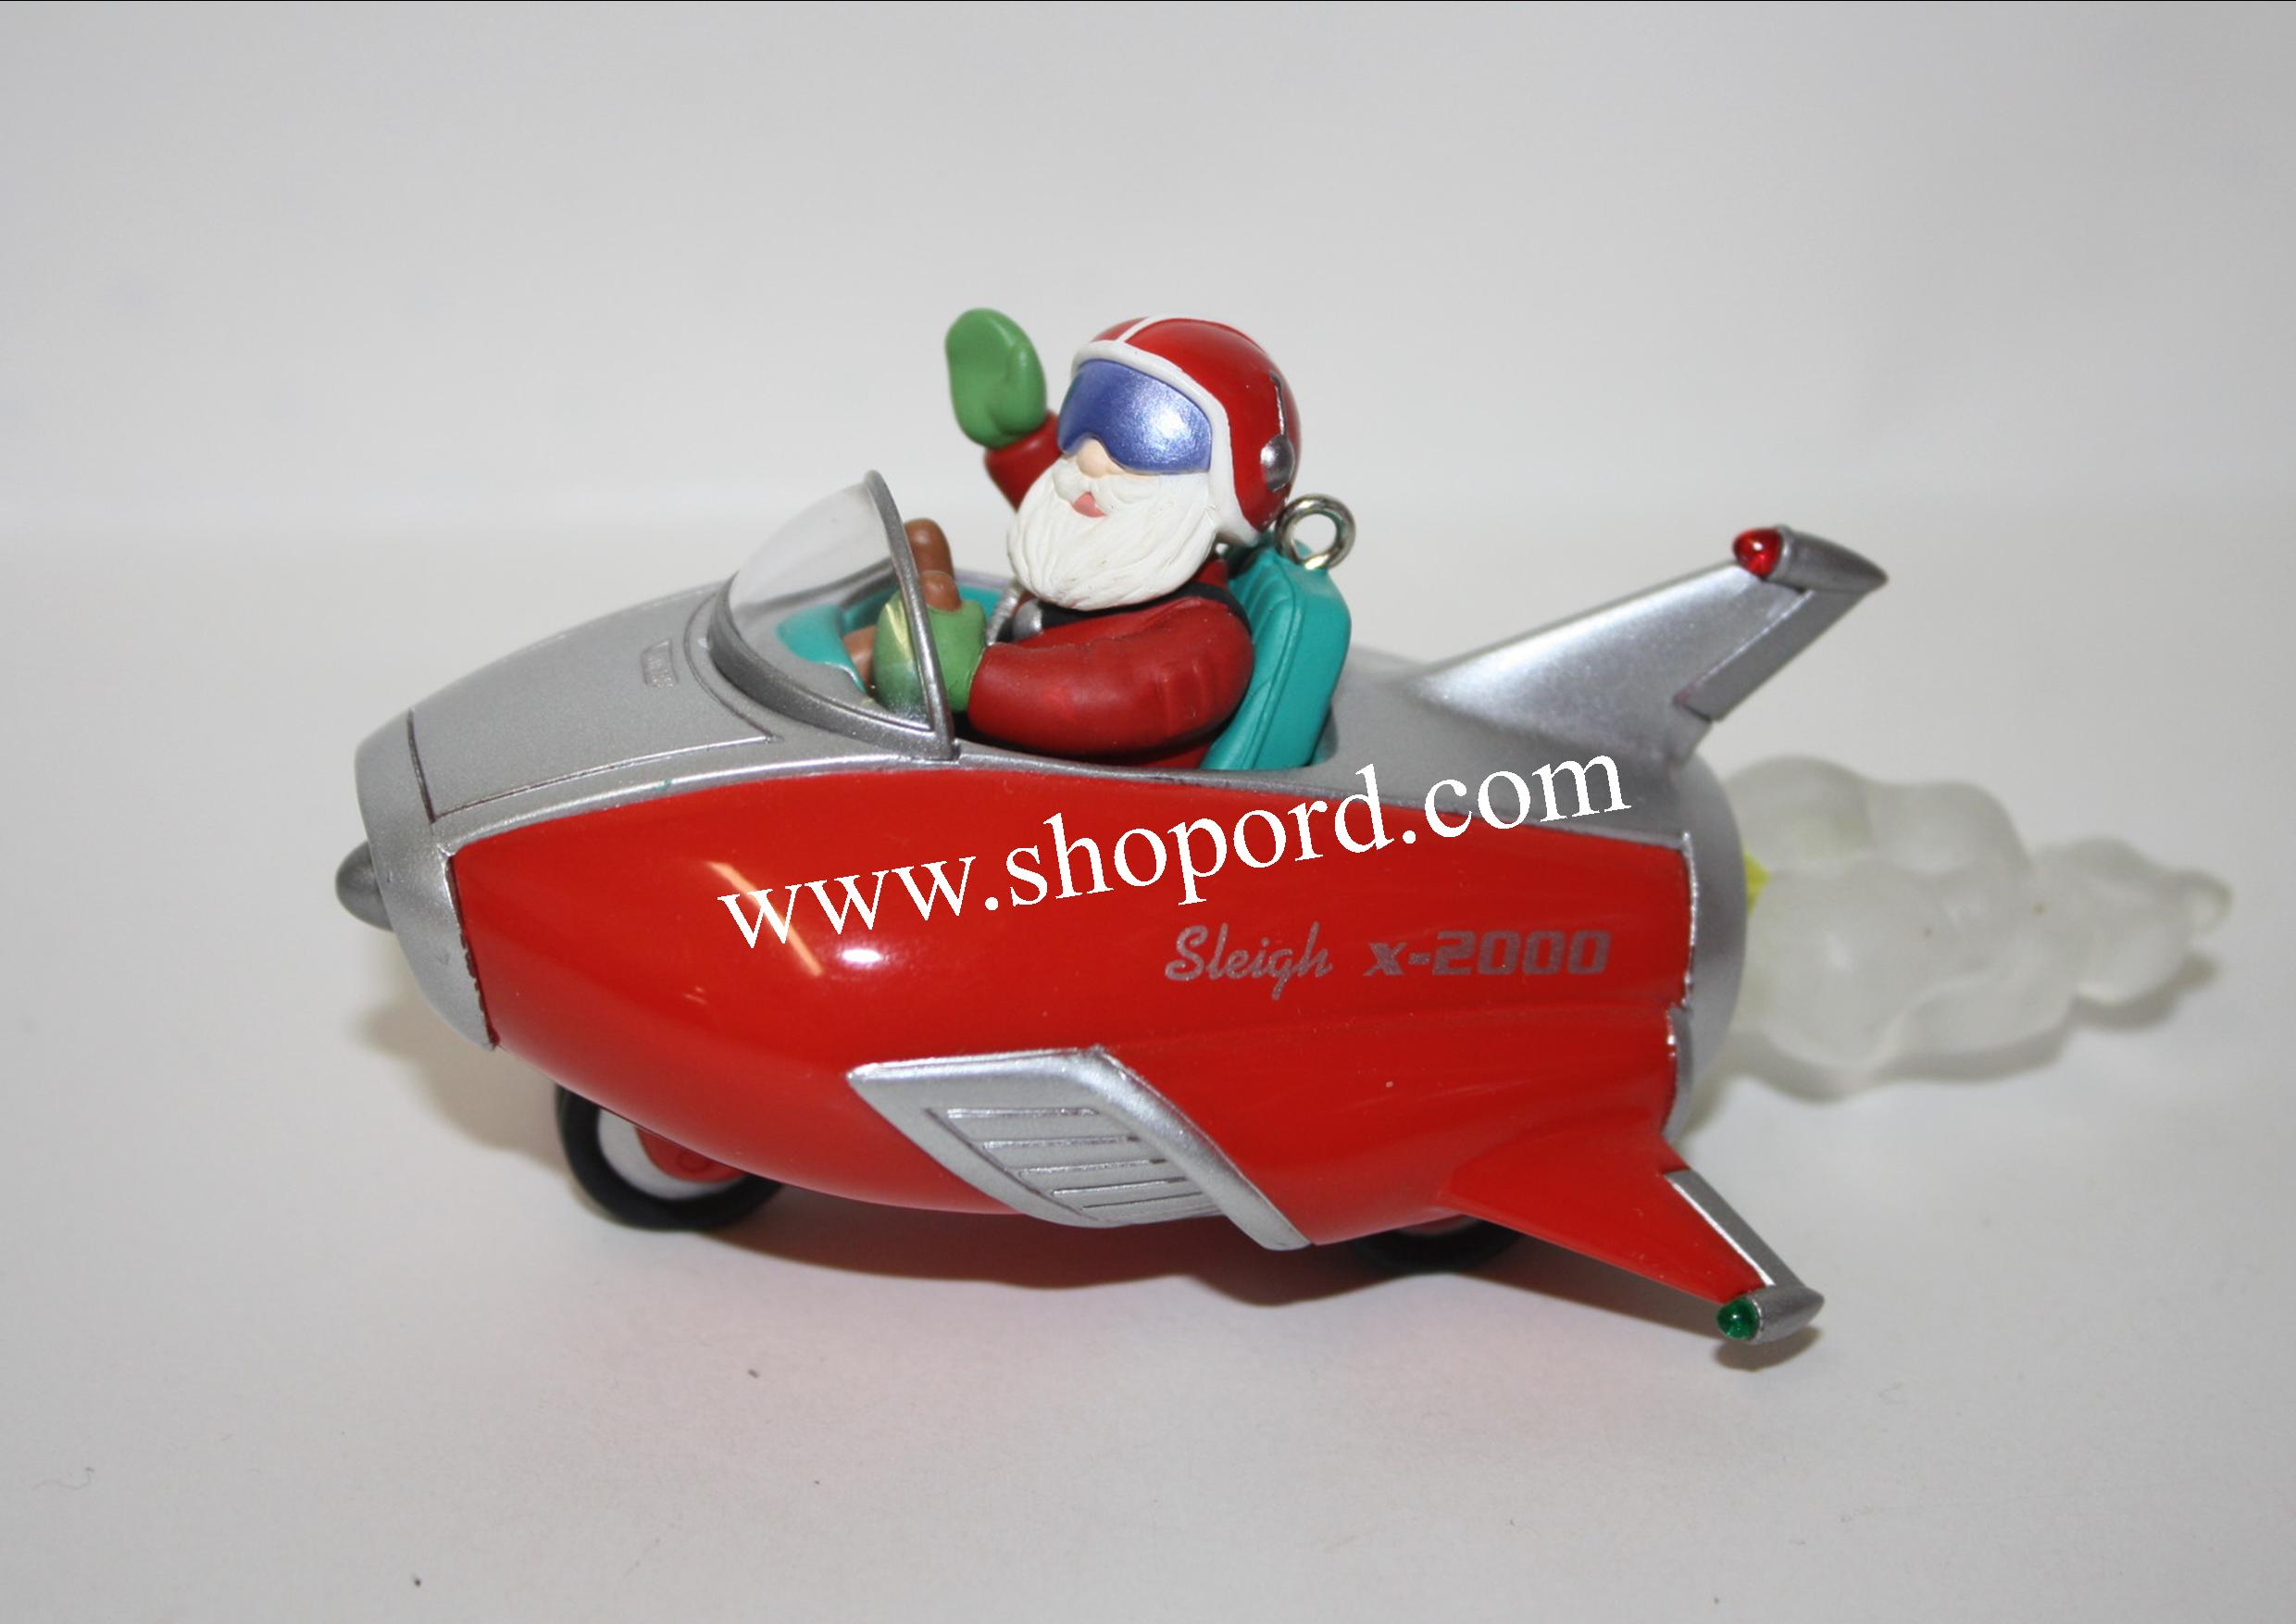 Hallmark 2000 Sleigh X 2000 Here Comes Santa Ornament 22nd In The Series QX6824